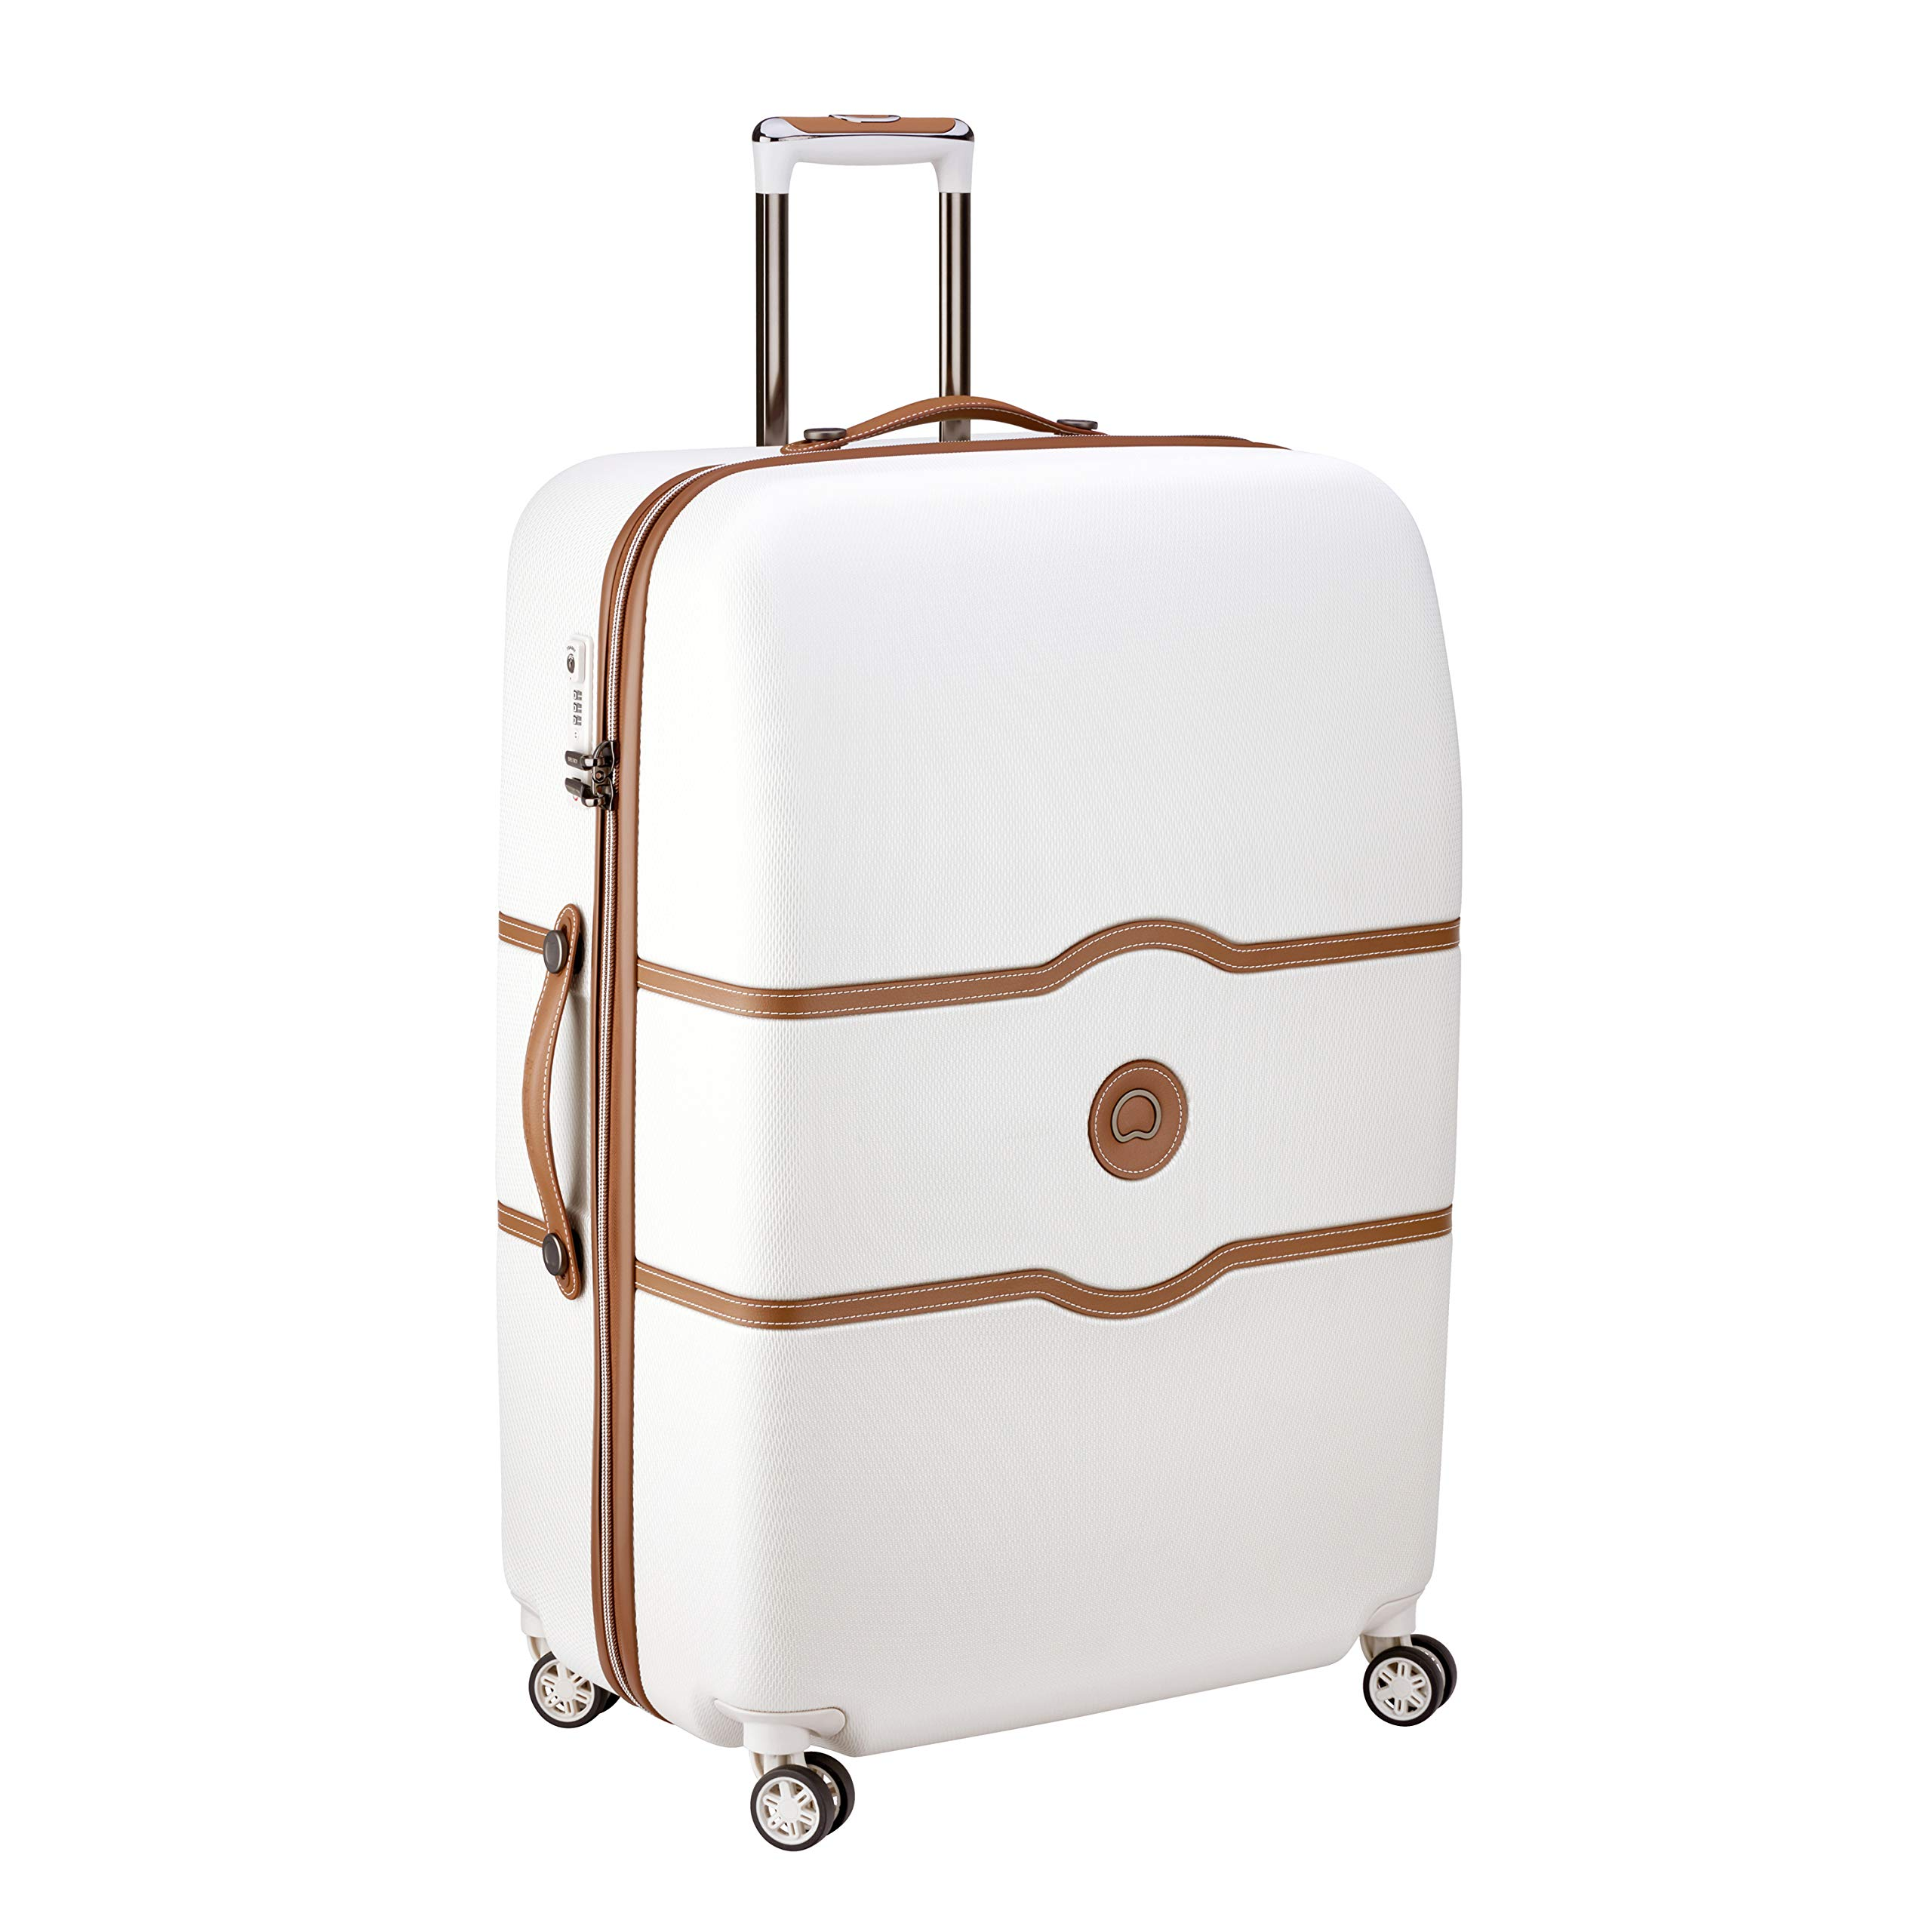 c4c853214 Delsey Chatelet Air Suitcase, 82 cm - Luggage and Travel Accessories